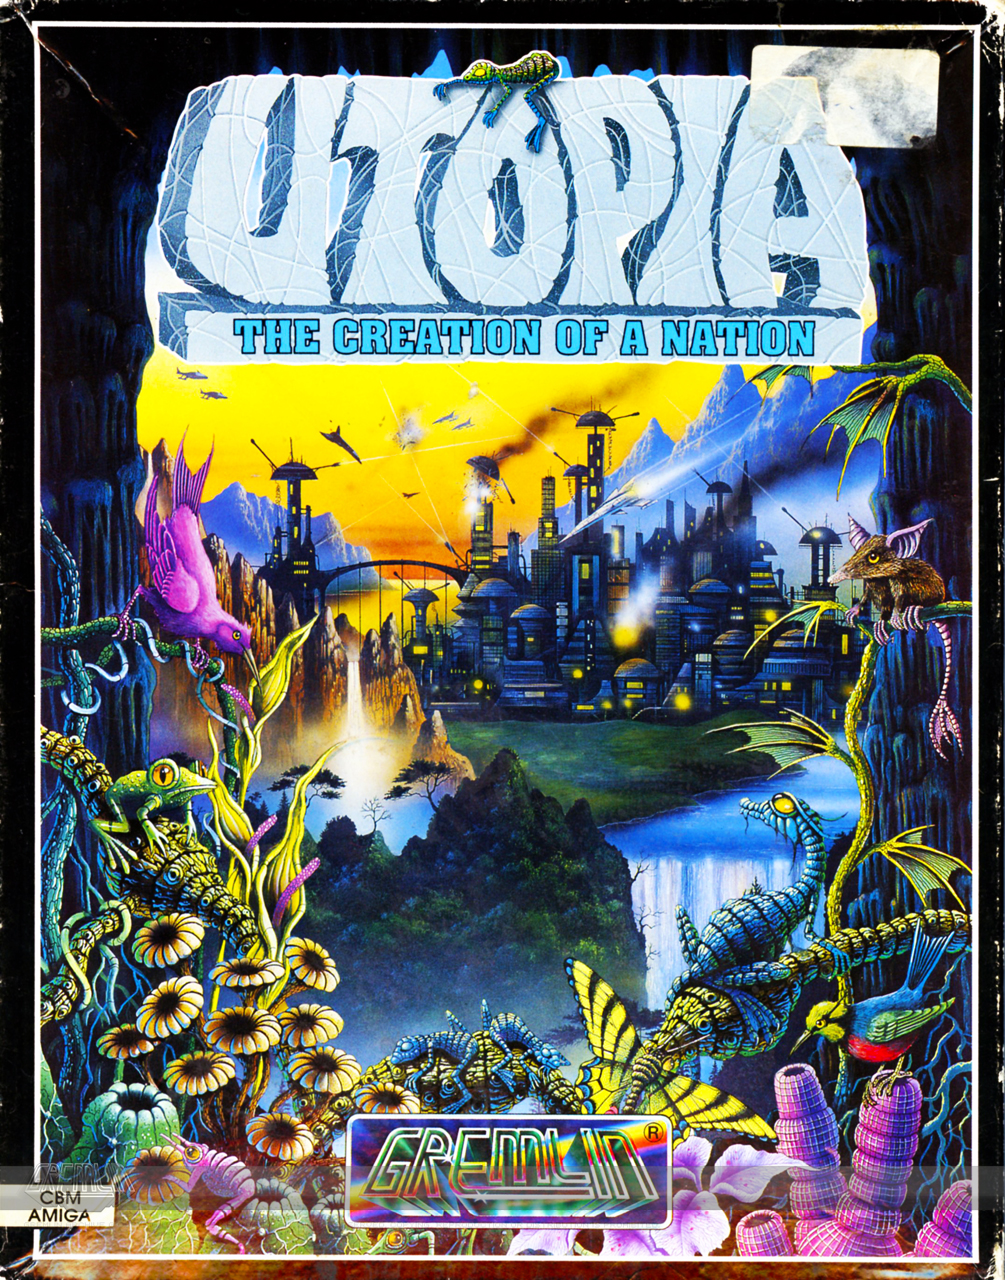 Utopia – The Creation of a Nation